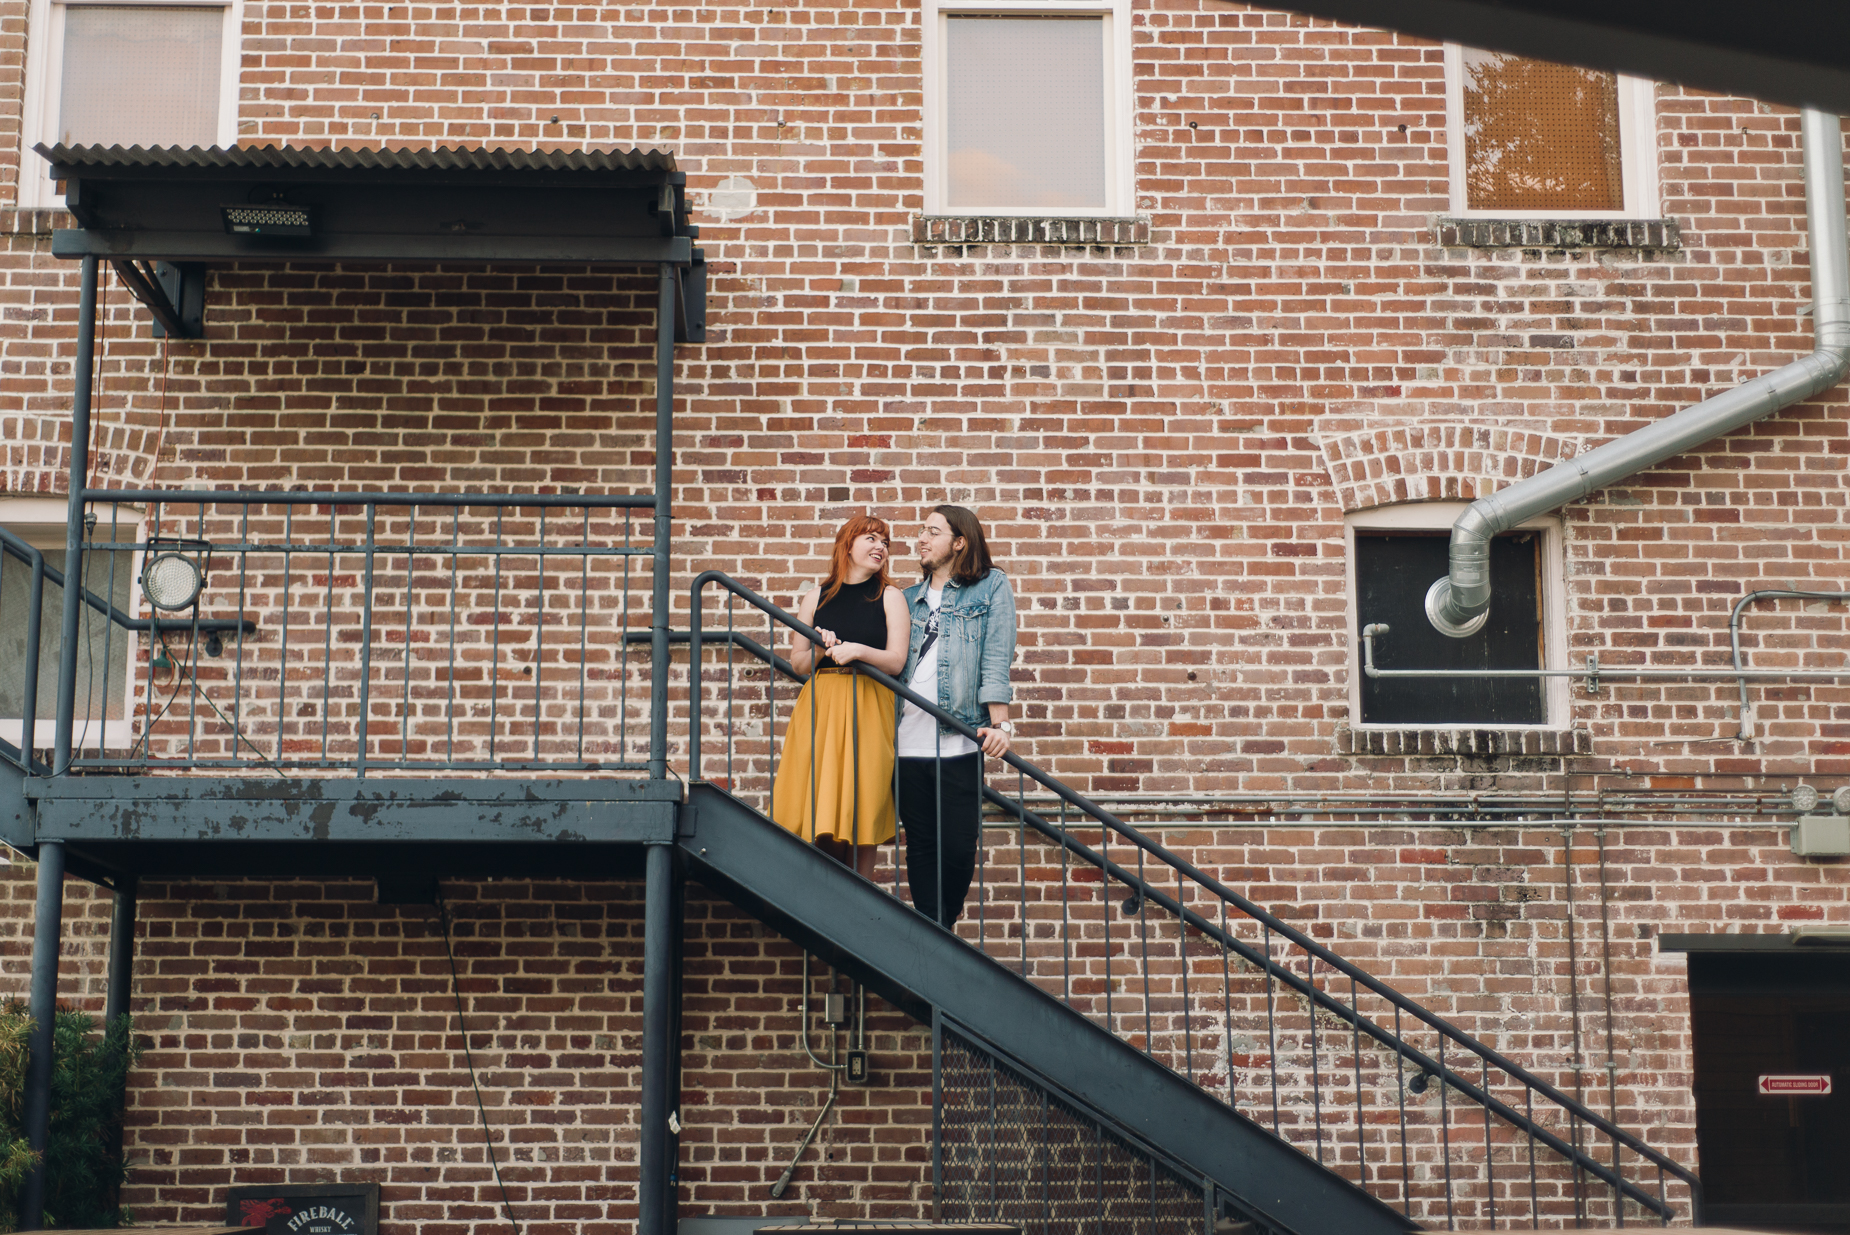 Ybor_Tampa_Engagement Session (26 of 42).jpg